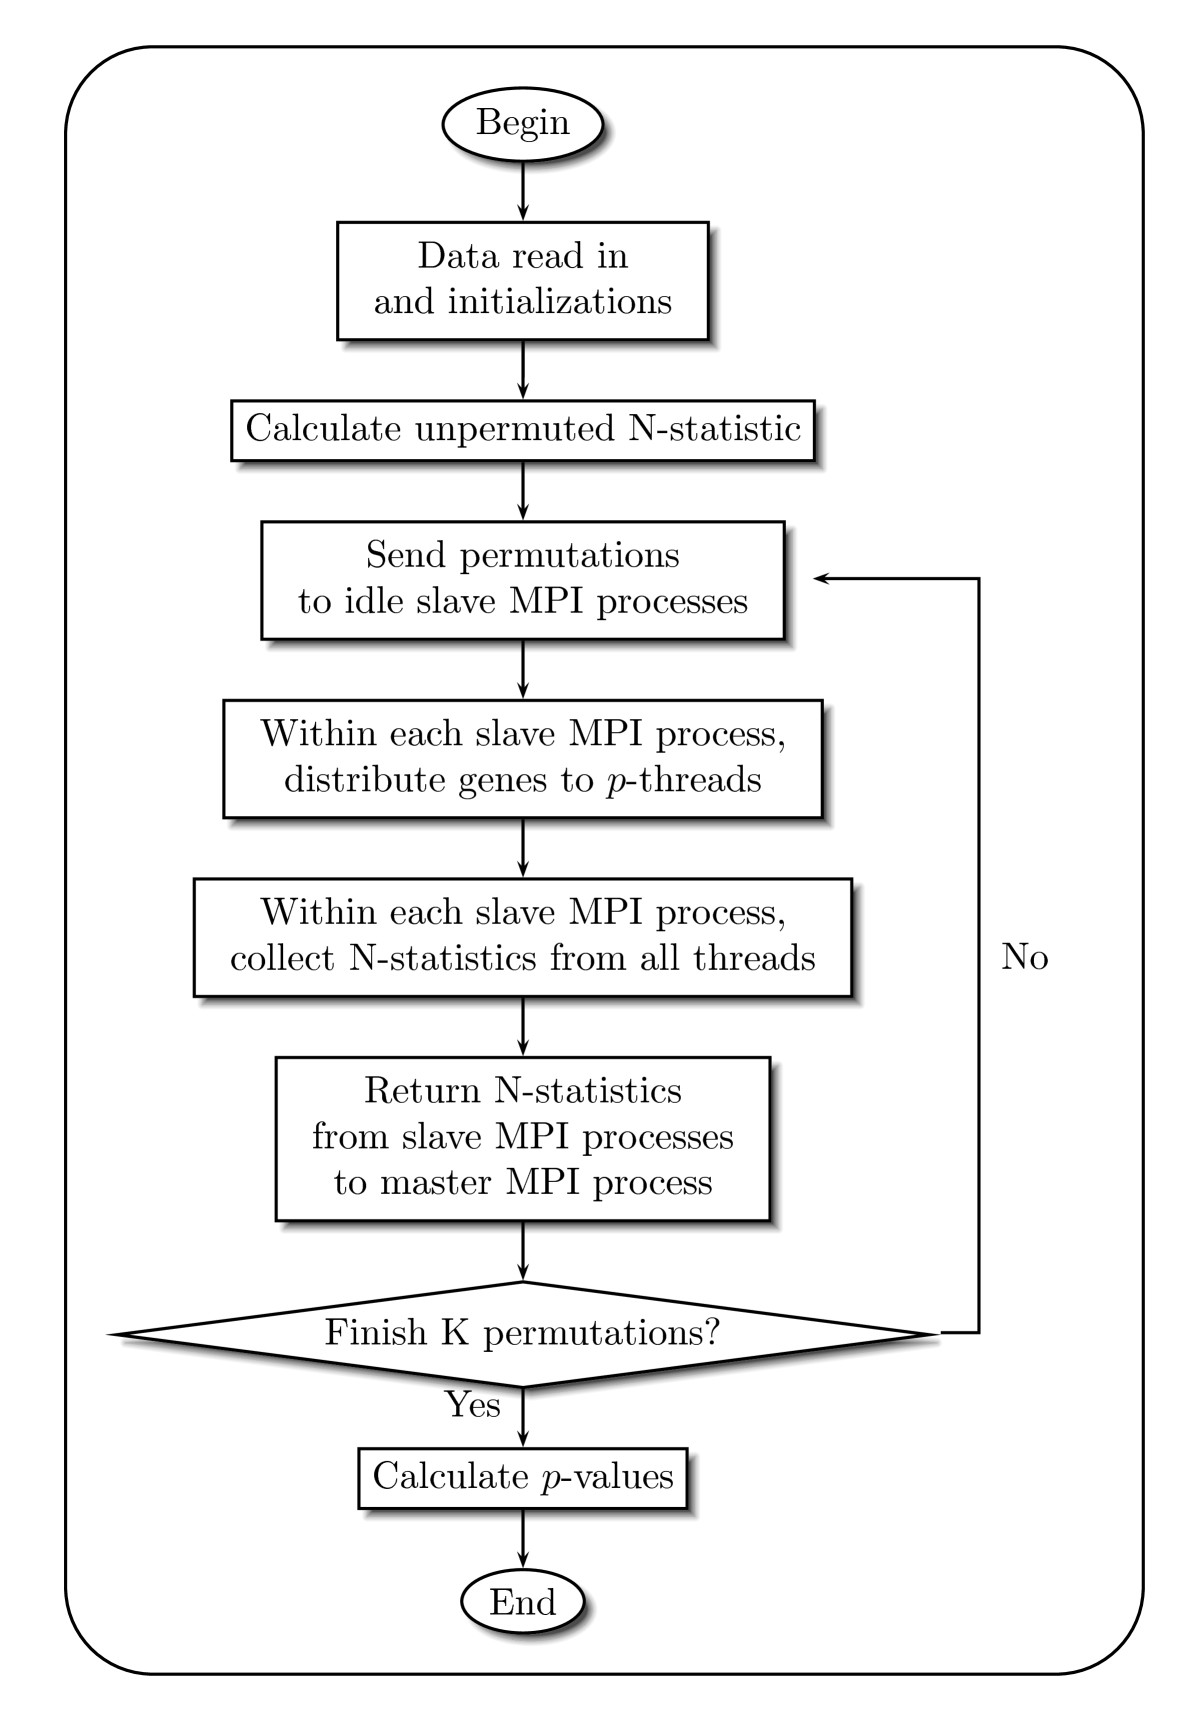 https://static-content.springer.com/image/art%3A10.1186%2F1471-2105-12-374/MediaObjects/12859_2011_Article_4835_Fig1_HTML.jpg